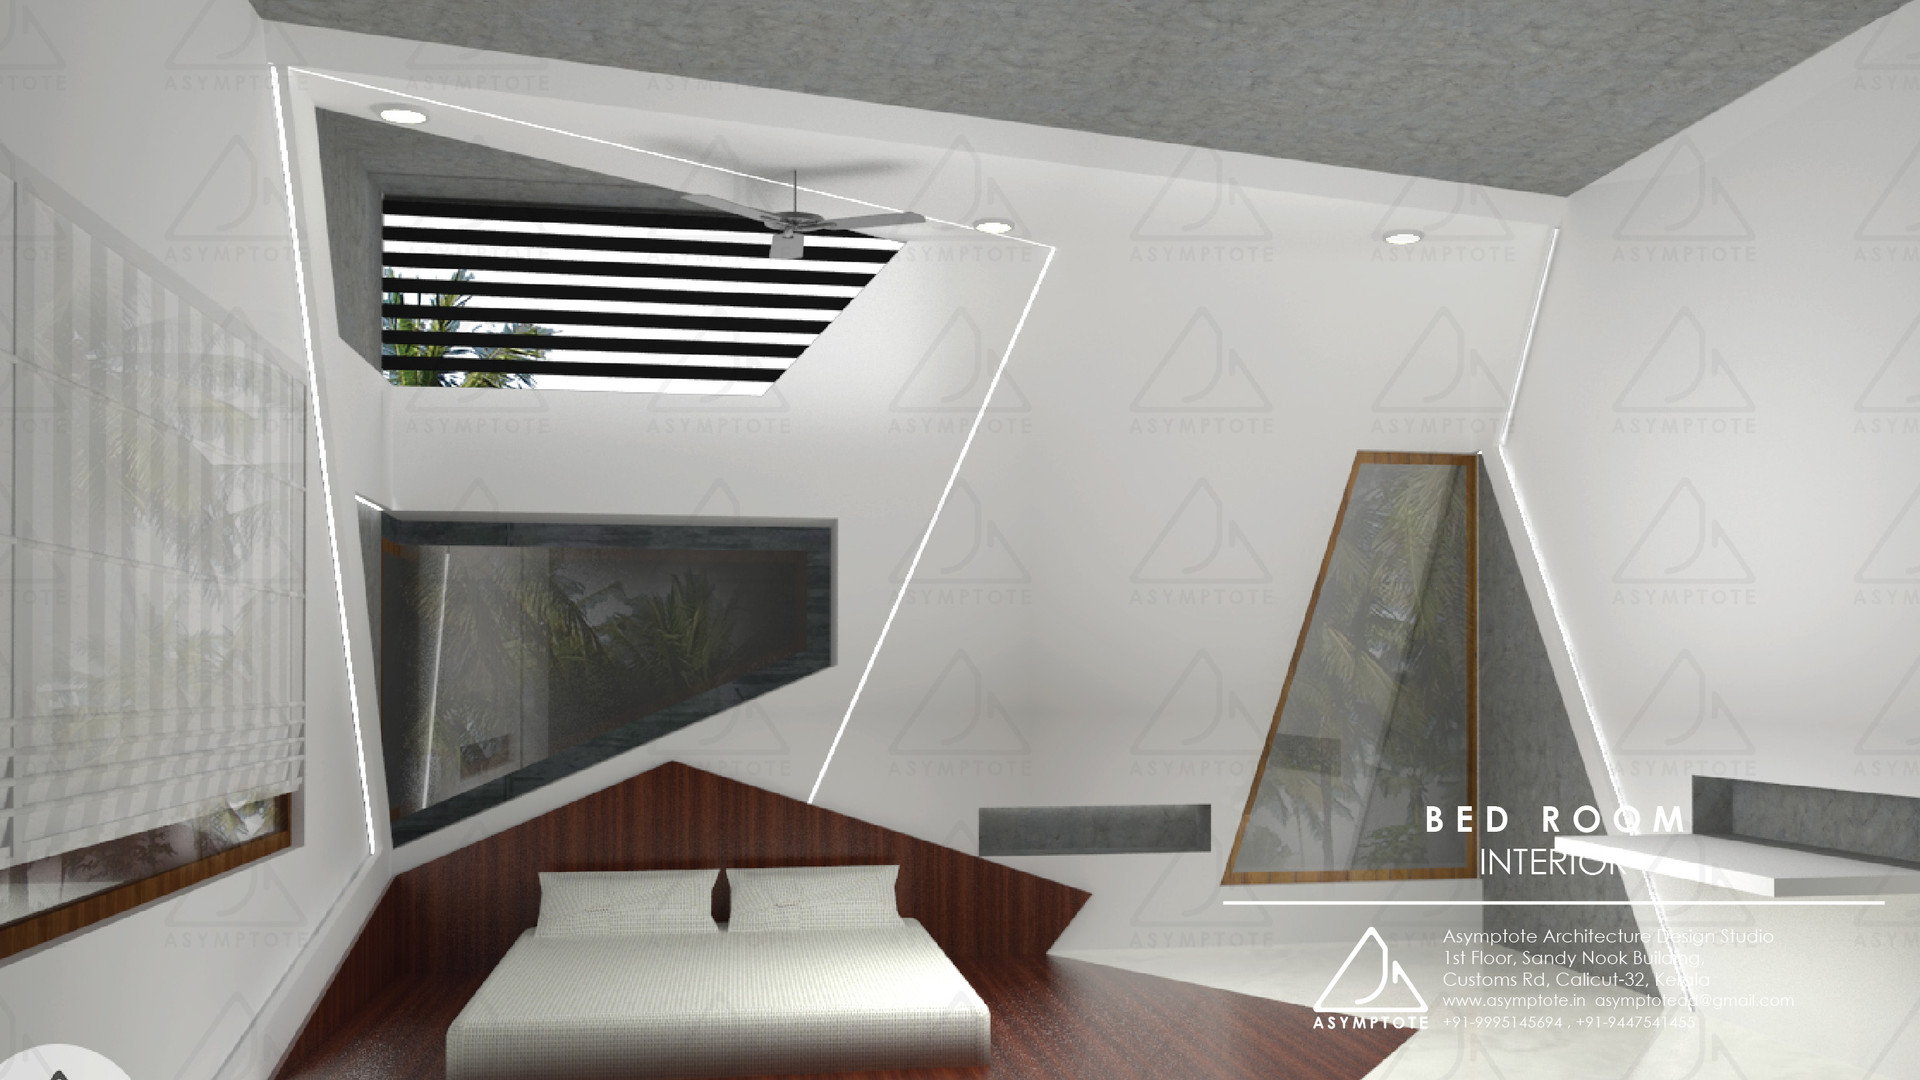 BED ROOM INTERIOR AND OTHER SPACE-09.jpg